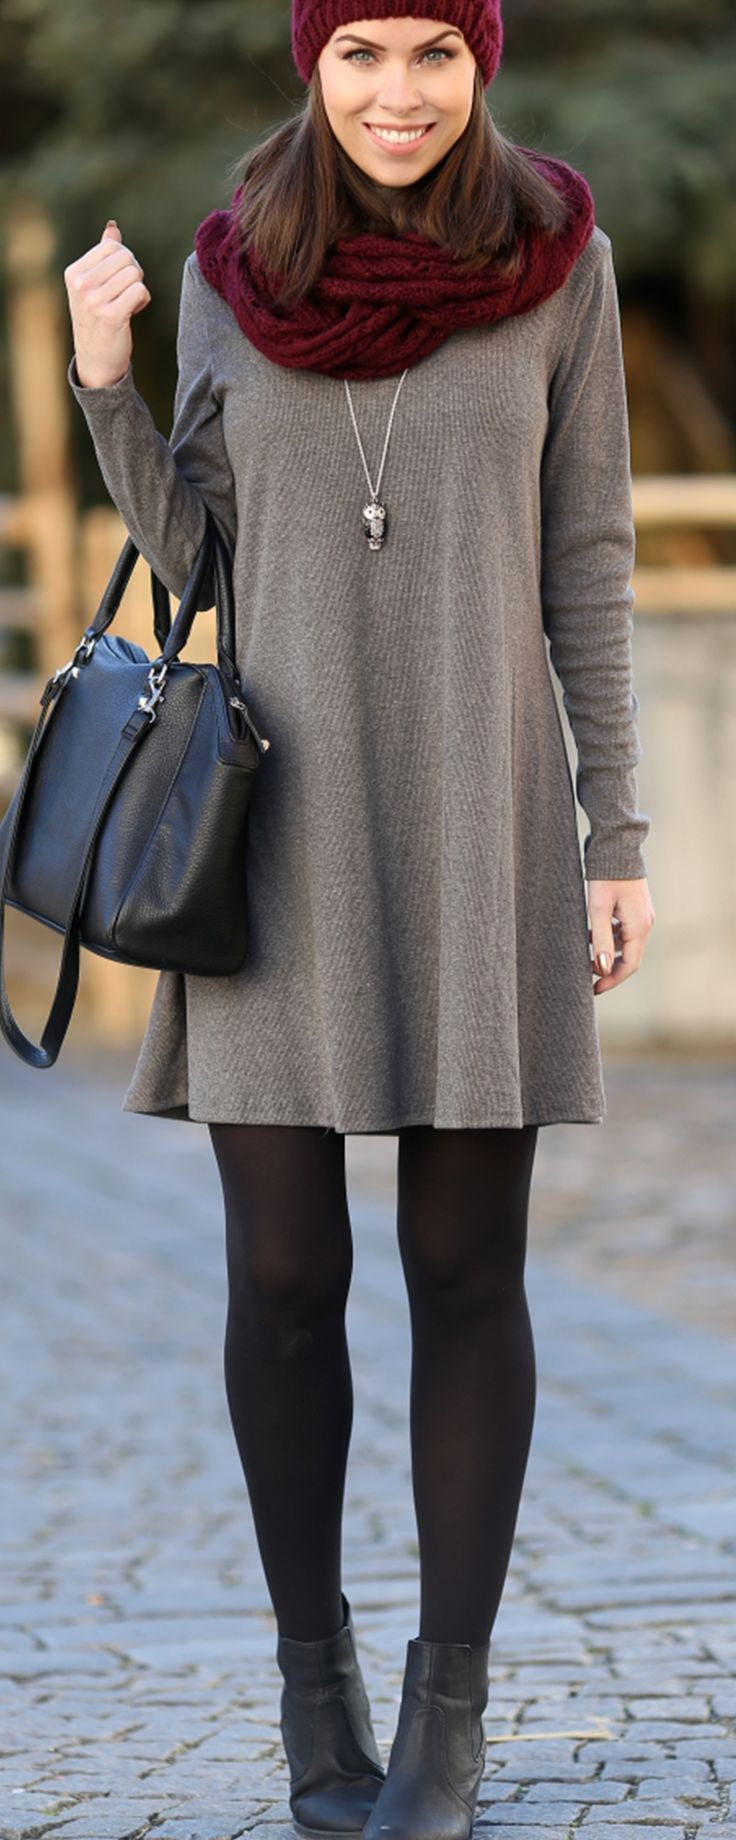 A super basic and easy way to wear your casual high neck dress in the winter